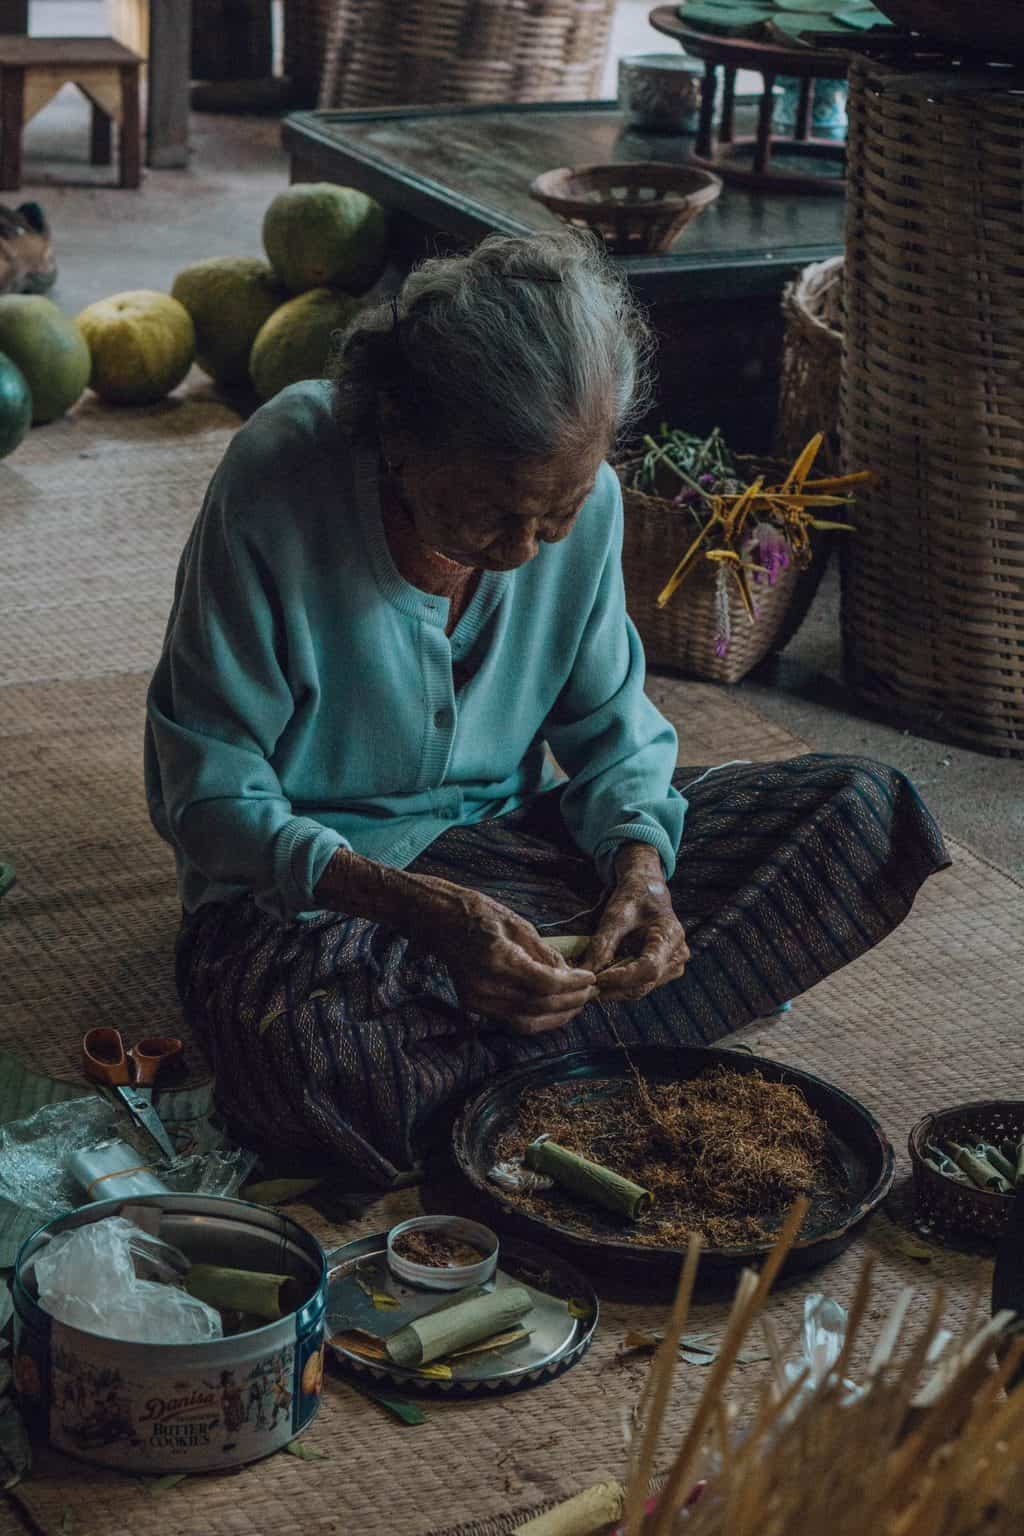 an elderly woman sitting on the floor hand rolling cigars, planning a trip to thailand